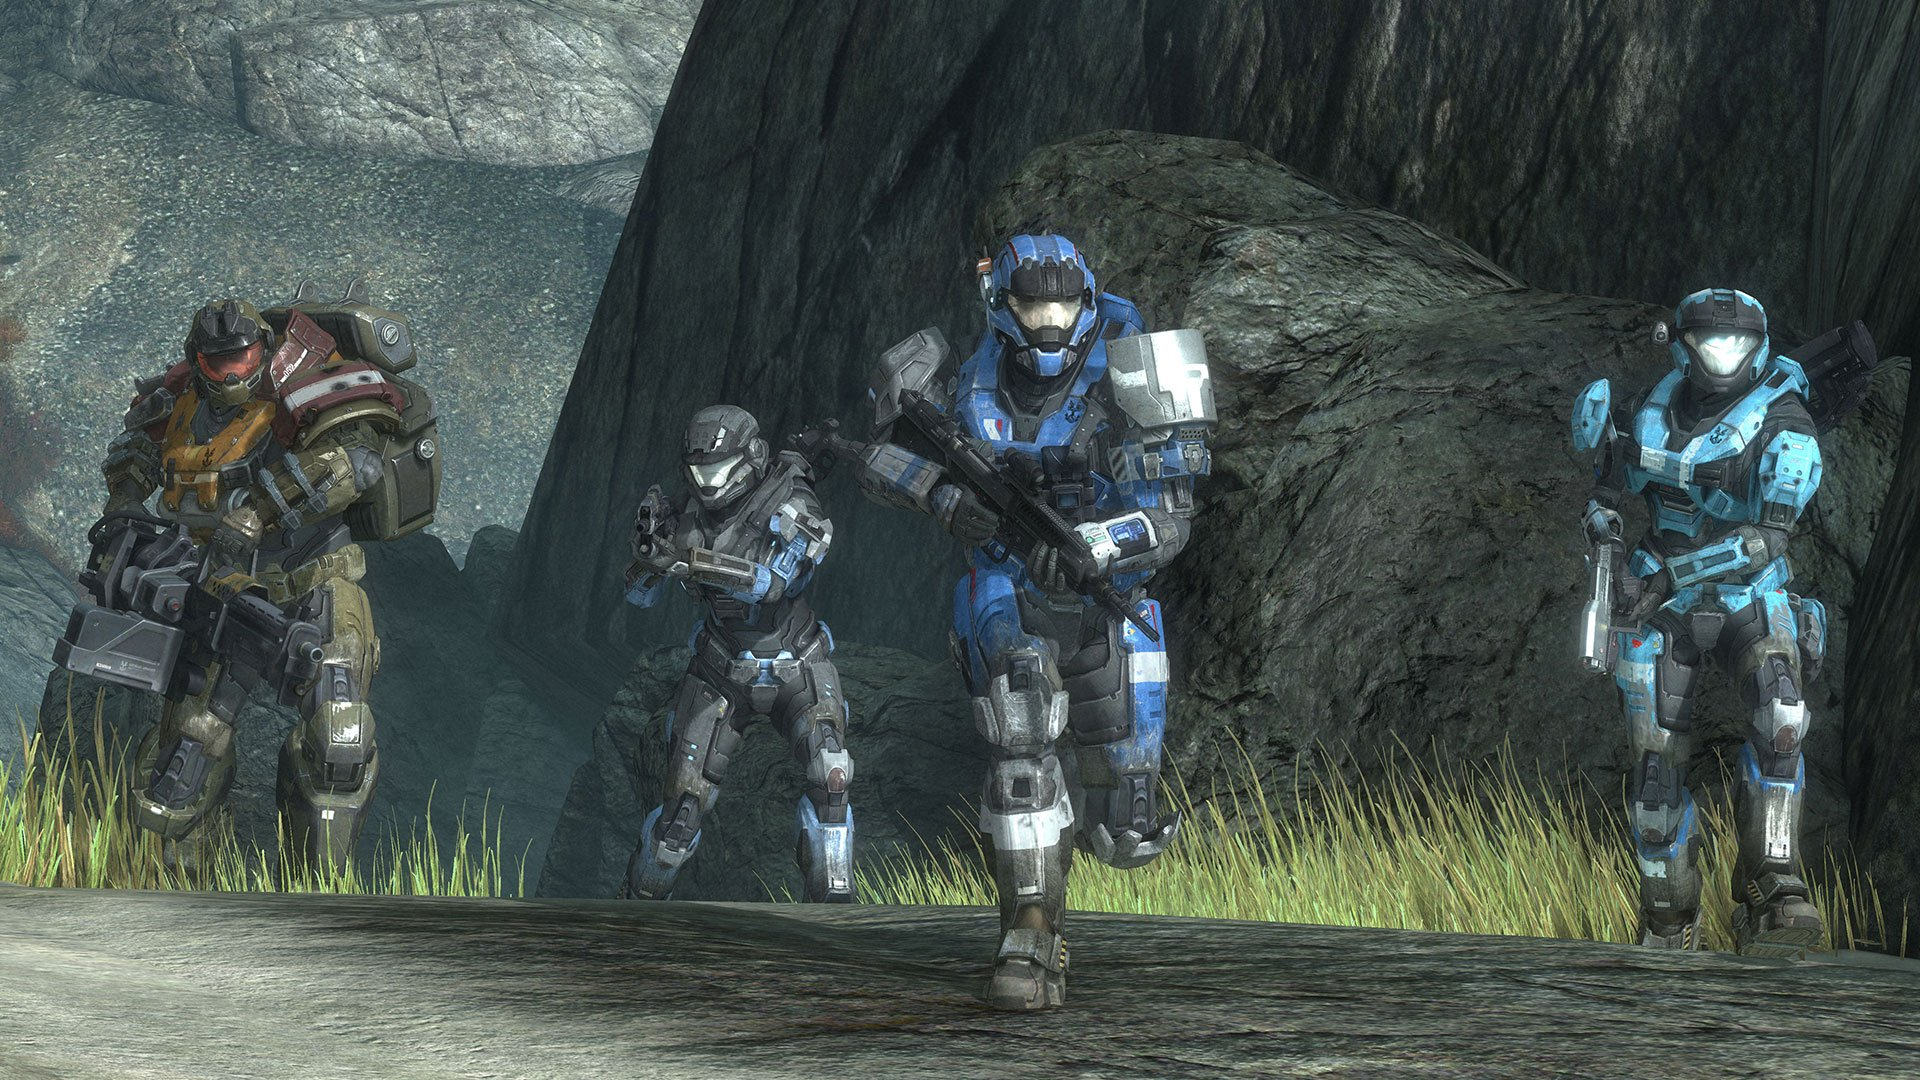 Halo: The Master Chief Collection Confirmed for PC, Halo: Reach